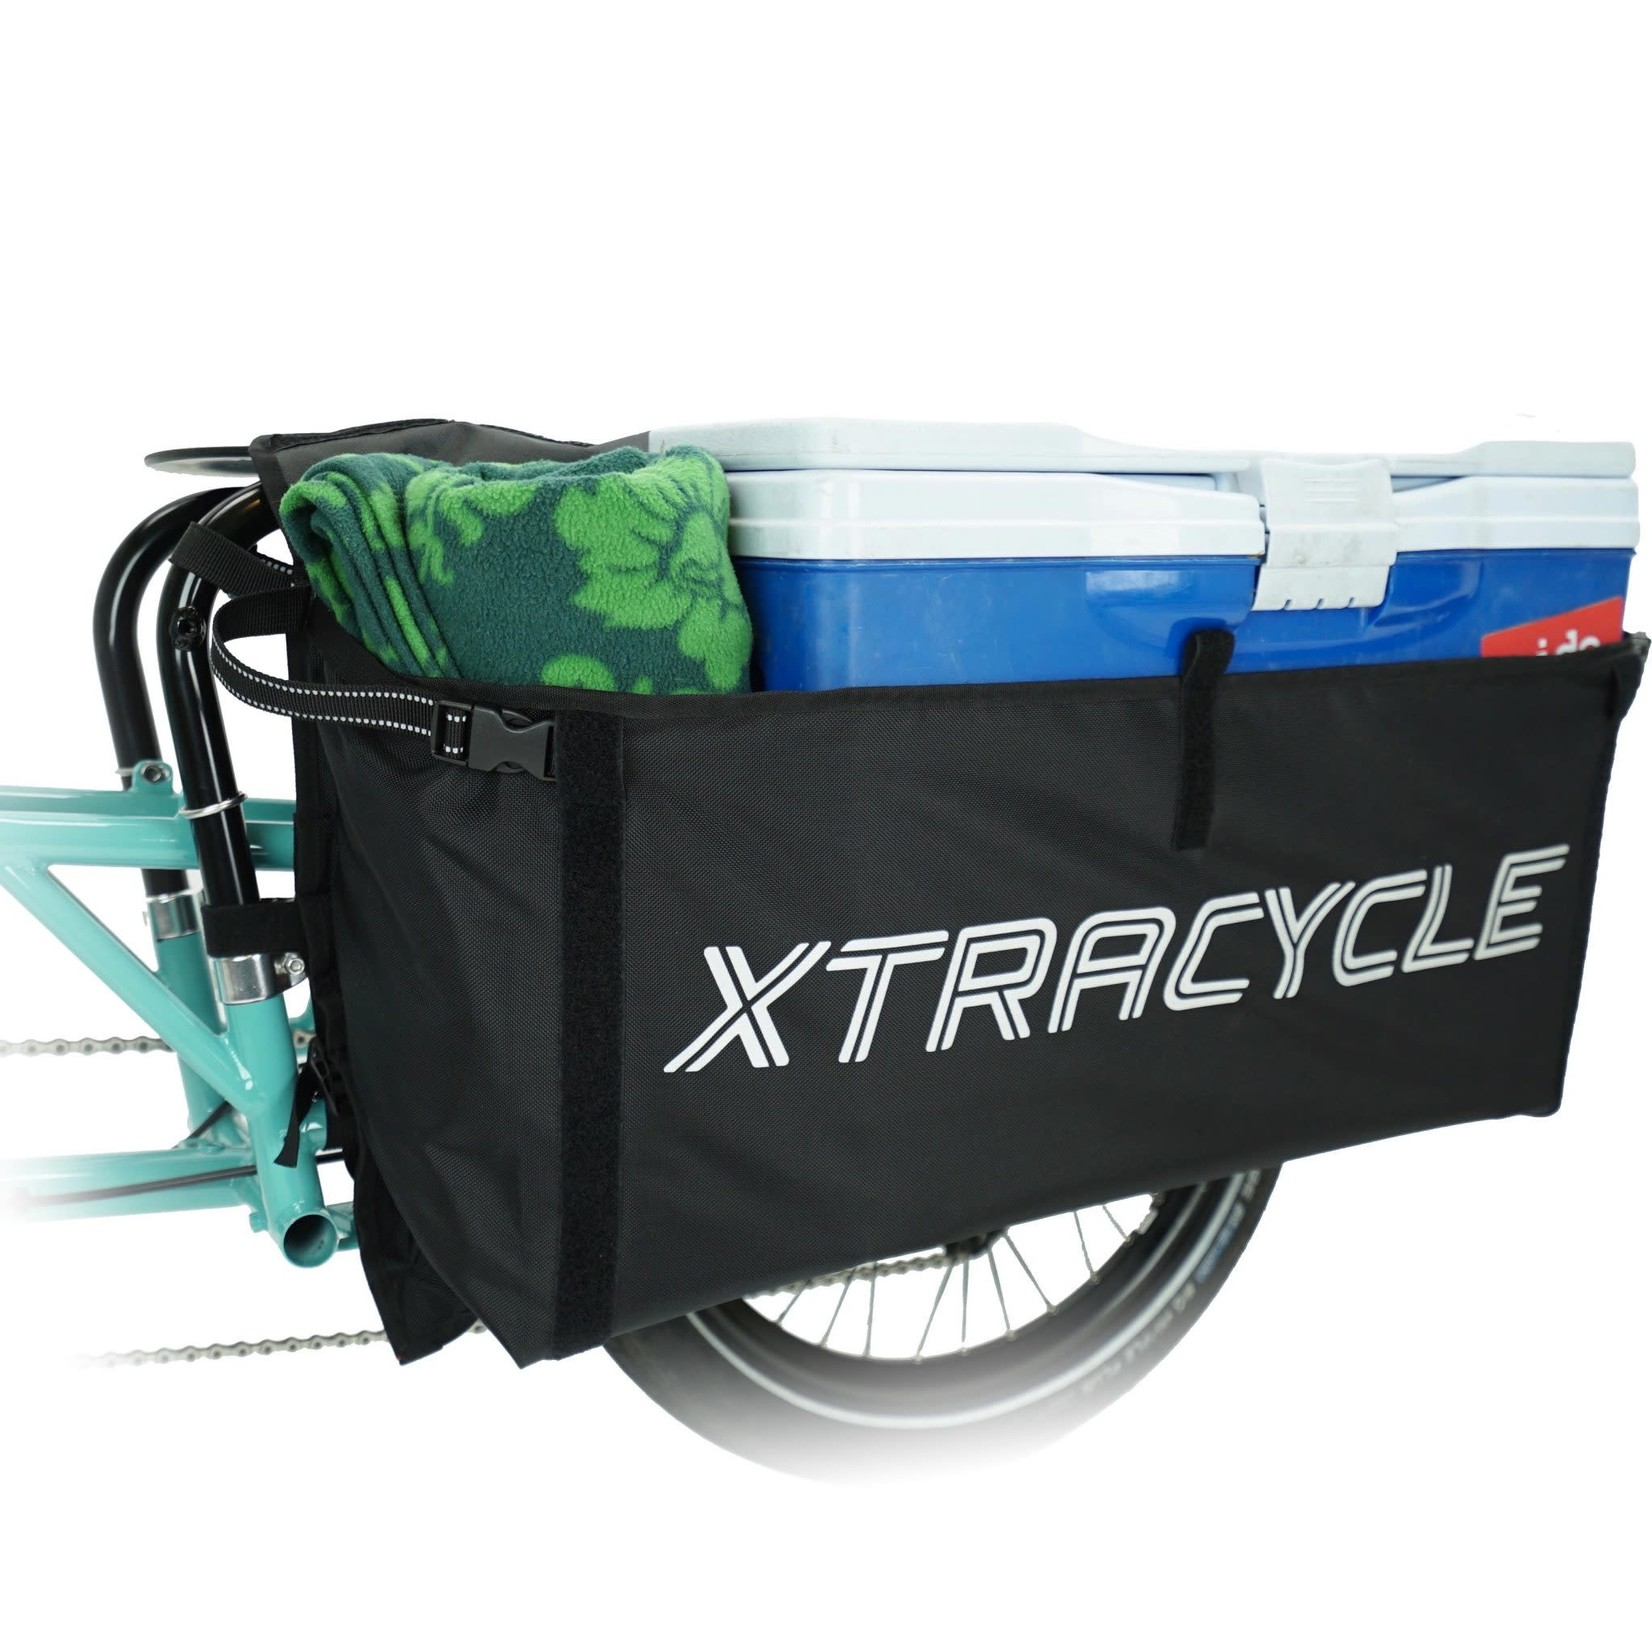 Xtracycle Xtracycle X3 CargoBay